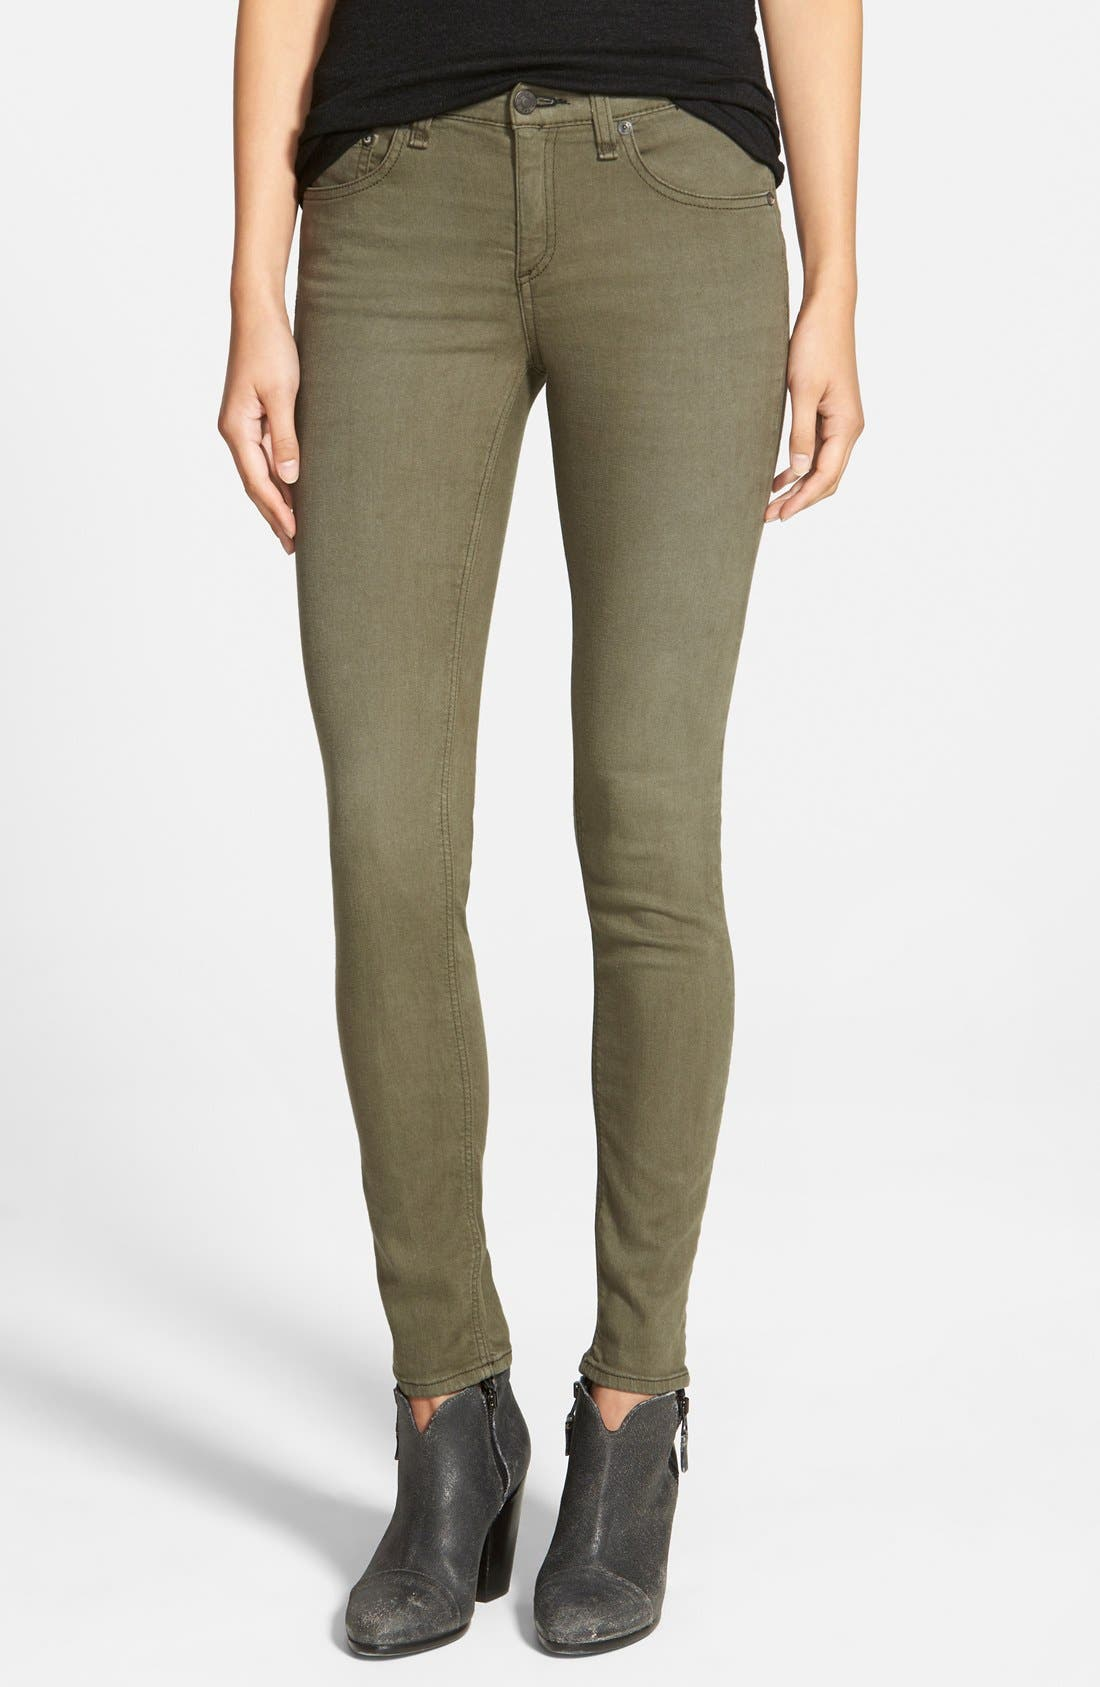 Alternate Image 1 Selected - rag & bone/JEAN 'The Skinny' Jeans (Distressed Fatigue) (Nordstrom Exclusive)